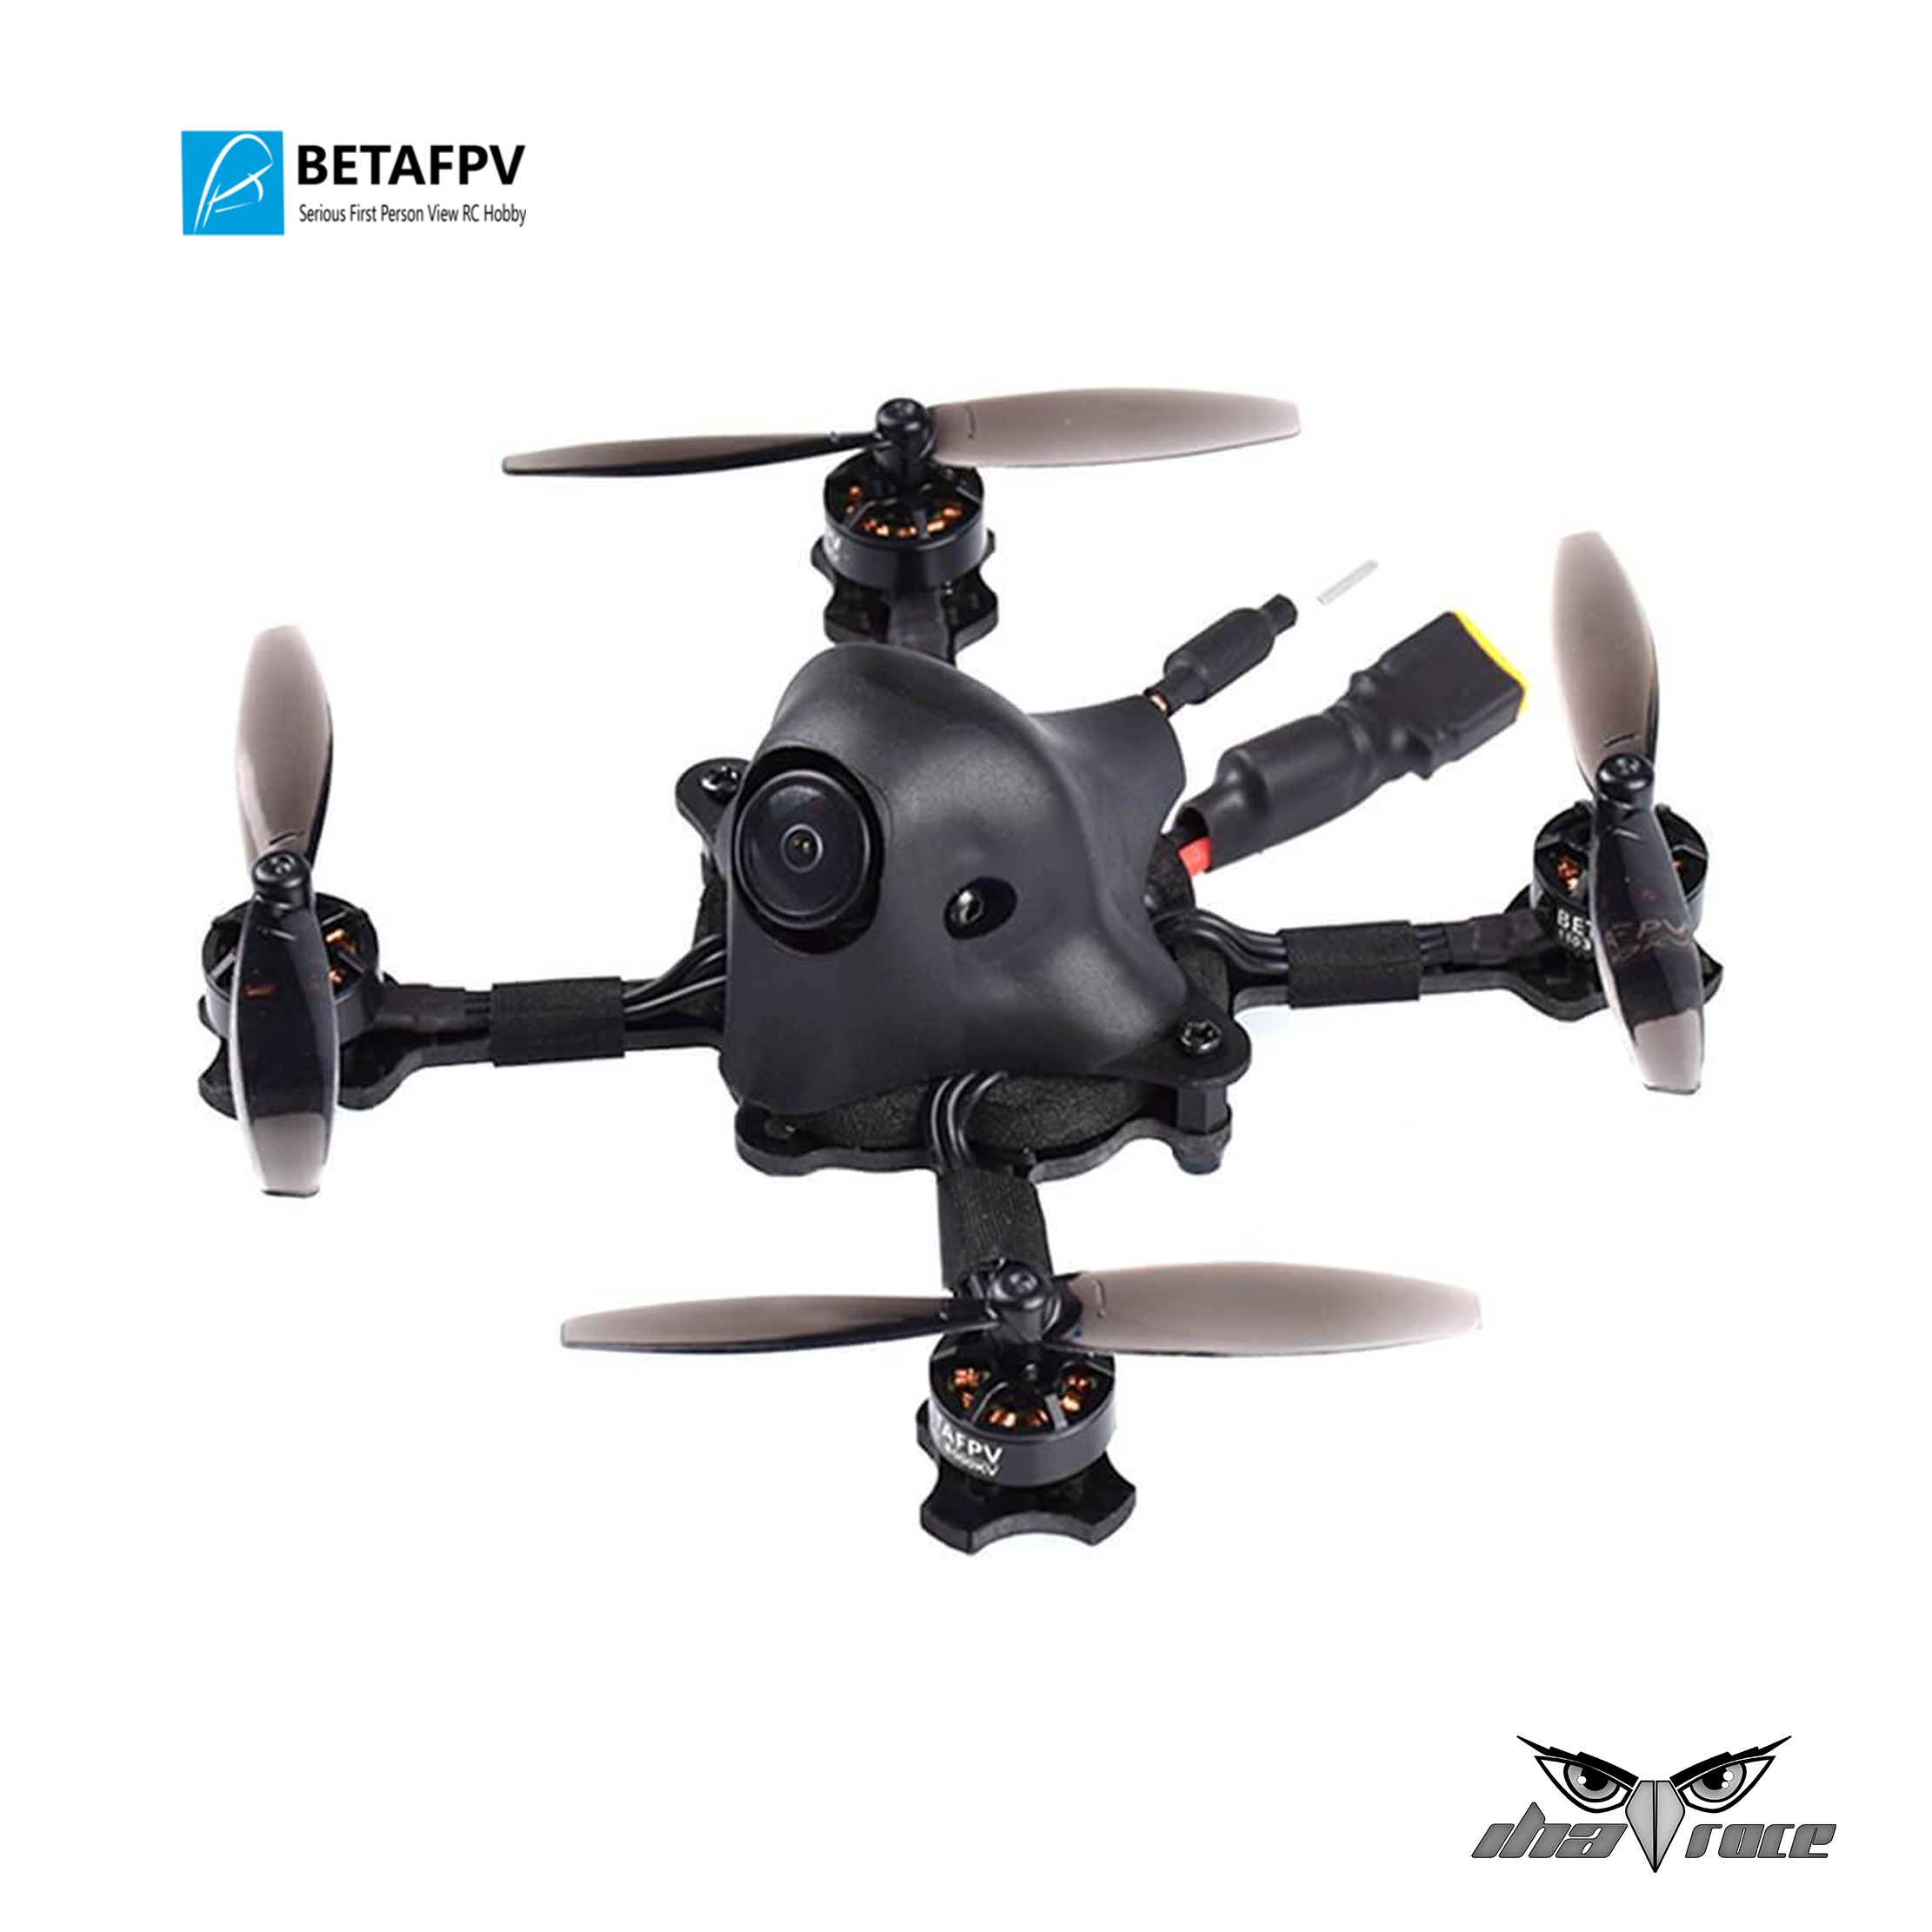 BetaFPV HX100 100mm FPV Quad